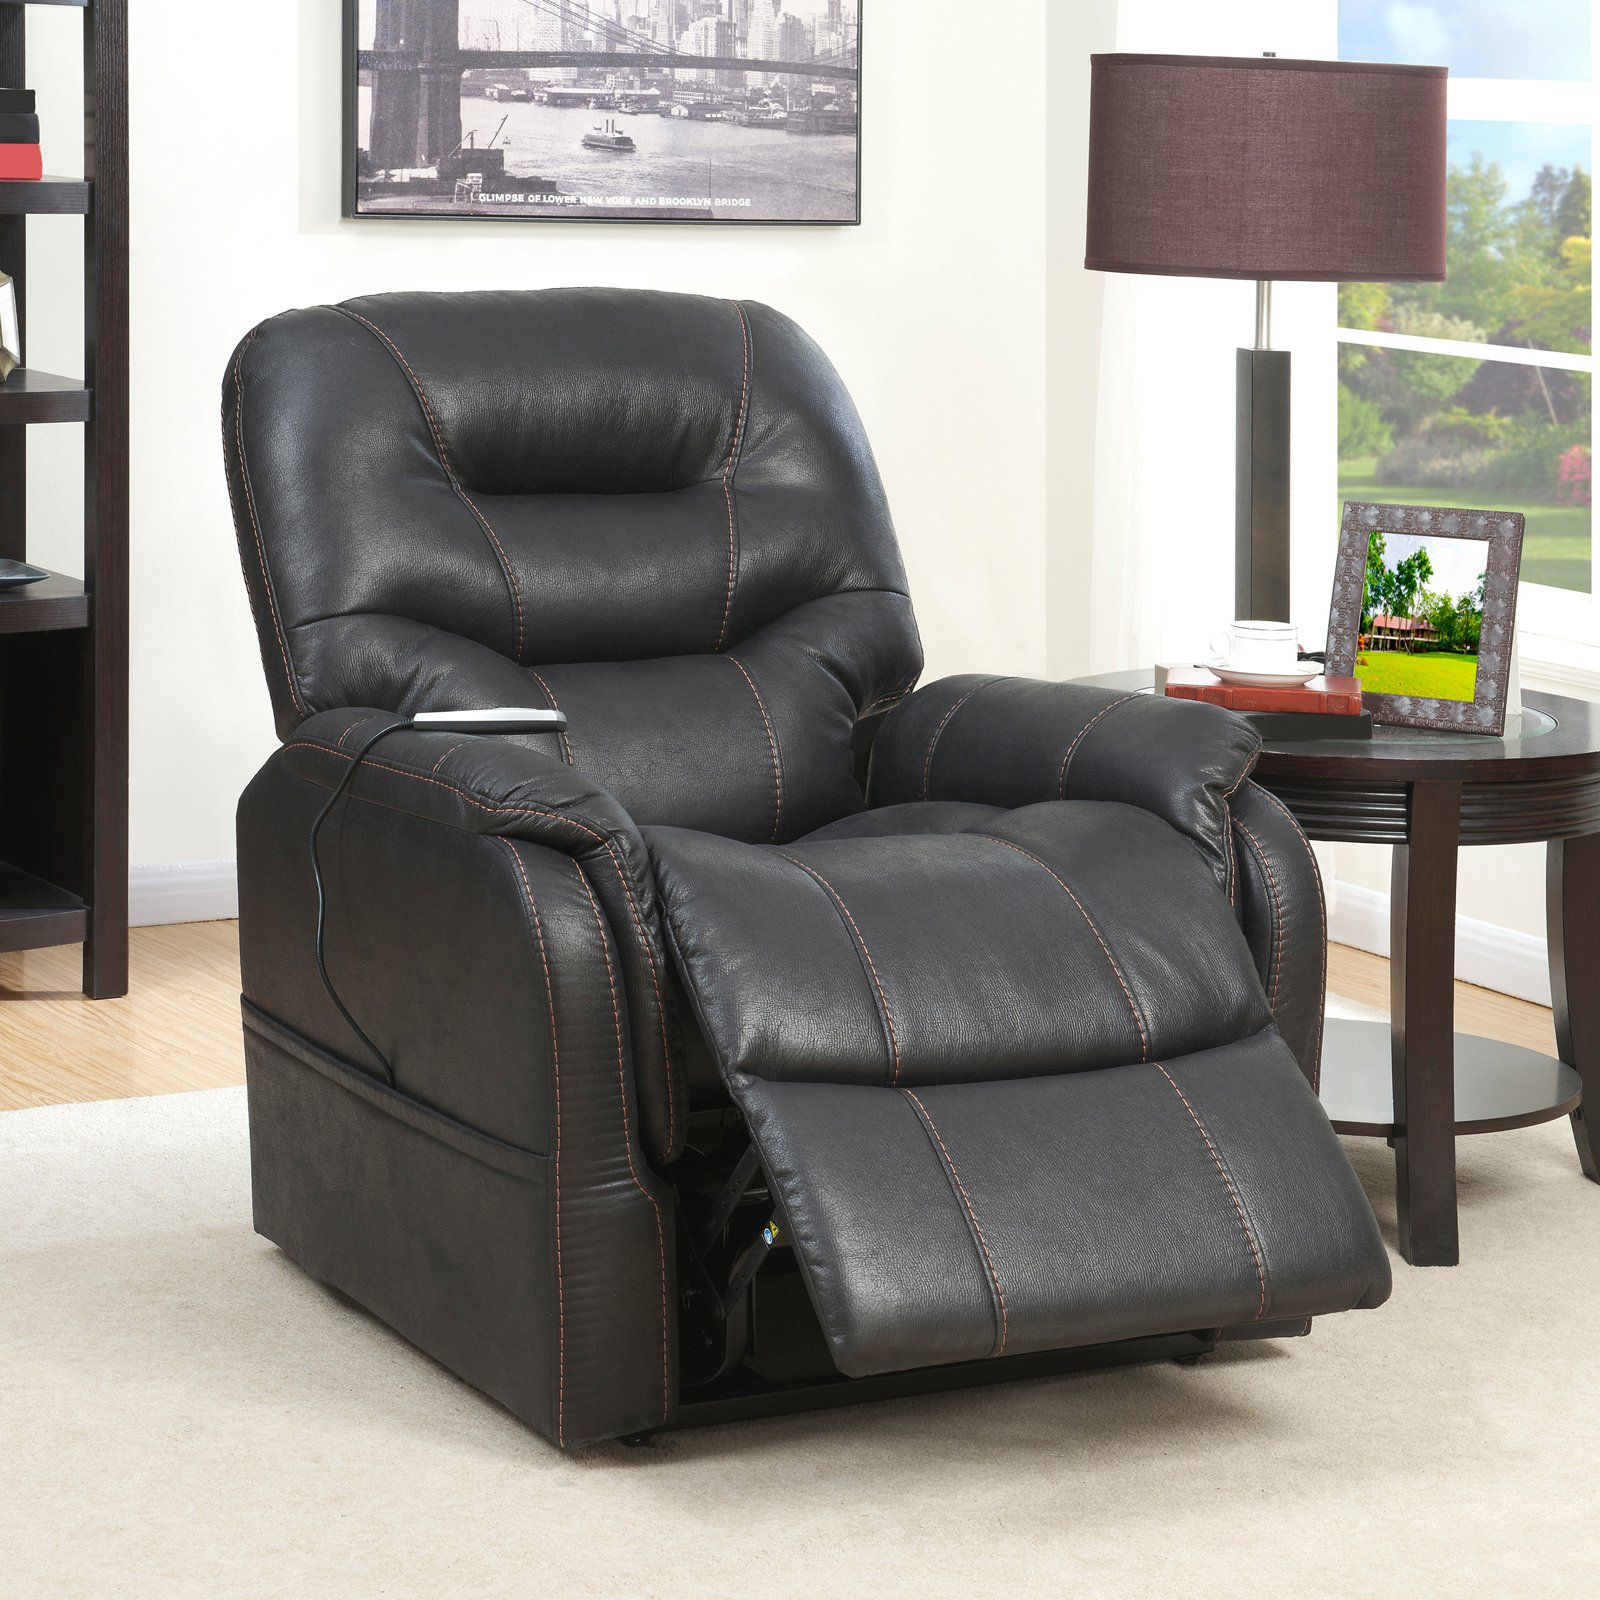 lift chairs walmart fold up costco prime resources heat and massaging chair in badlands